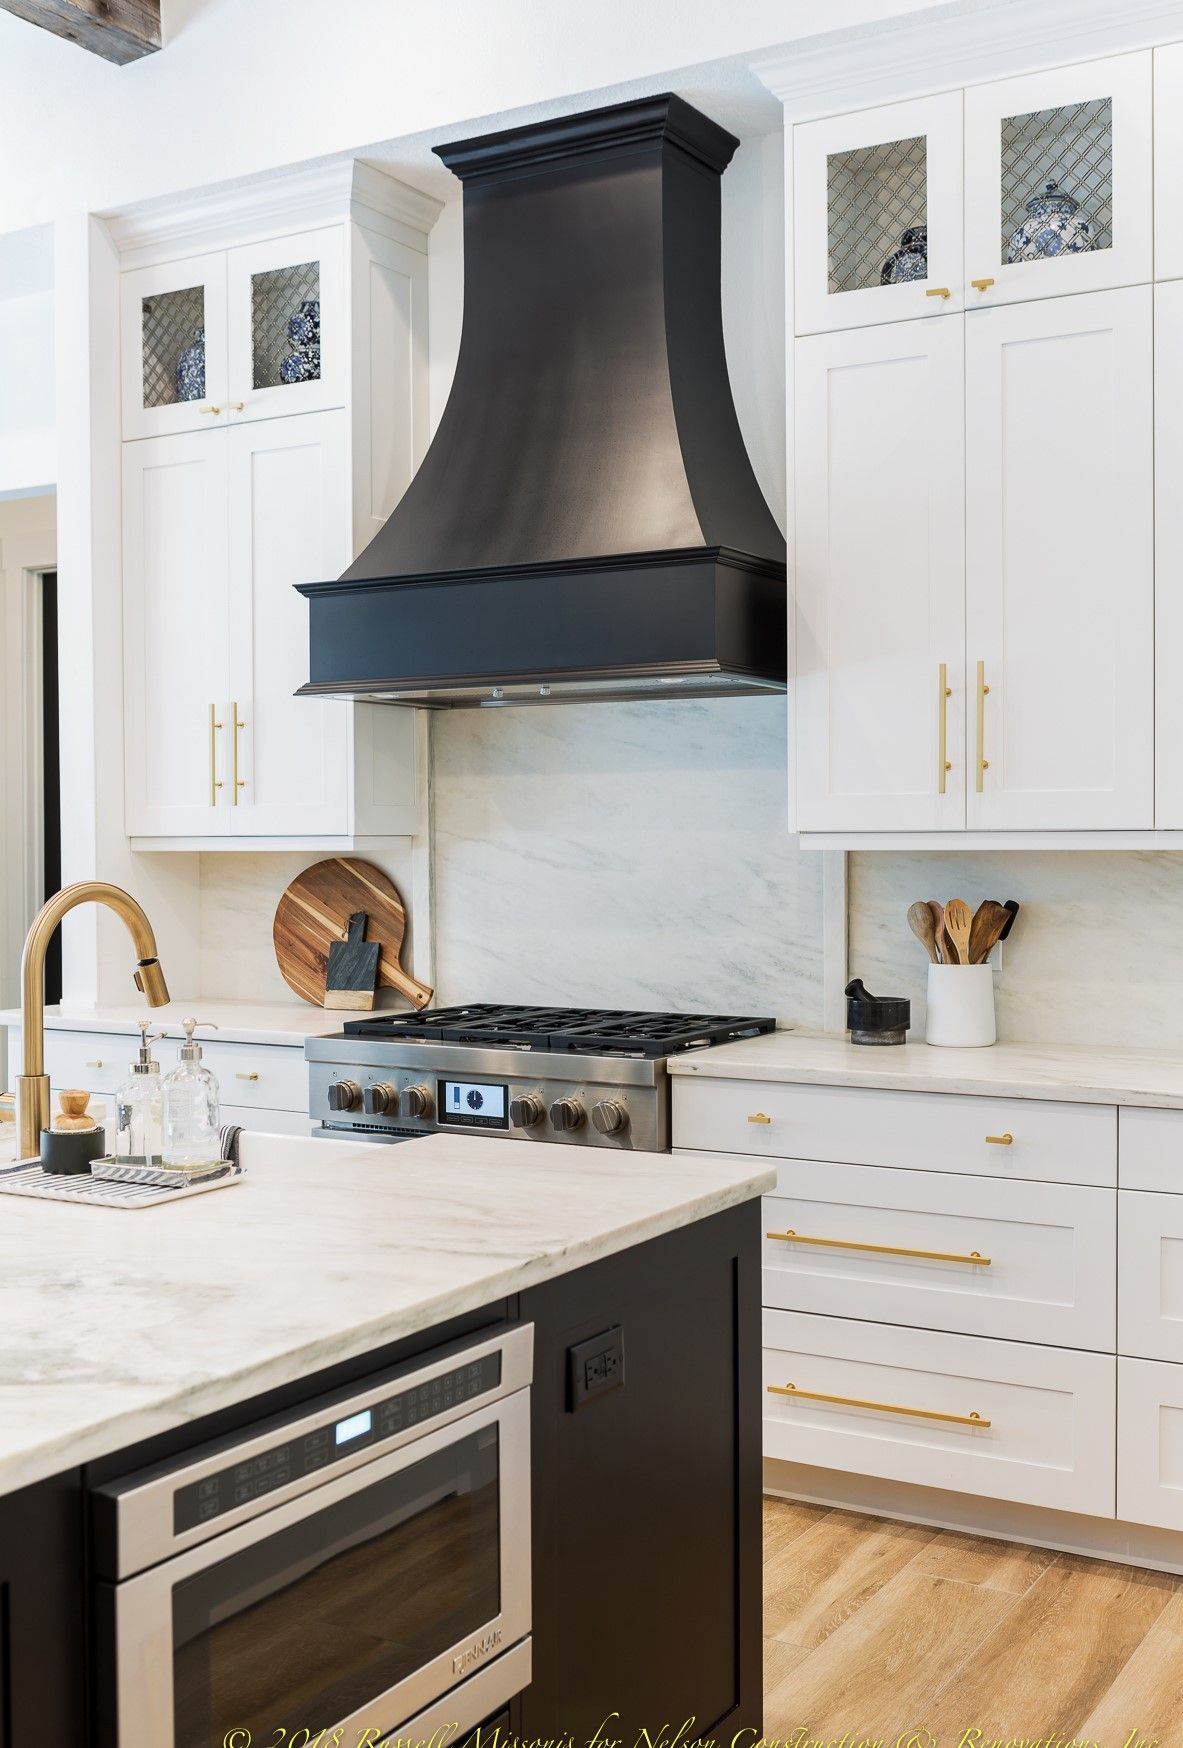 Love The Black Hood And Brass Fixtures In This Kitchen We Remodeled In Brandon Florida Last Year Kitchen Hood Design Kitchen Range Hood Kitchen Remodel